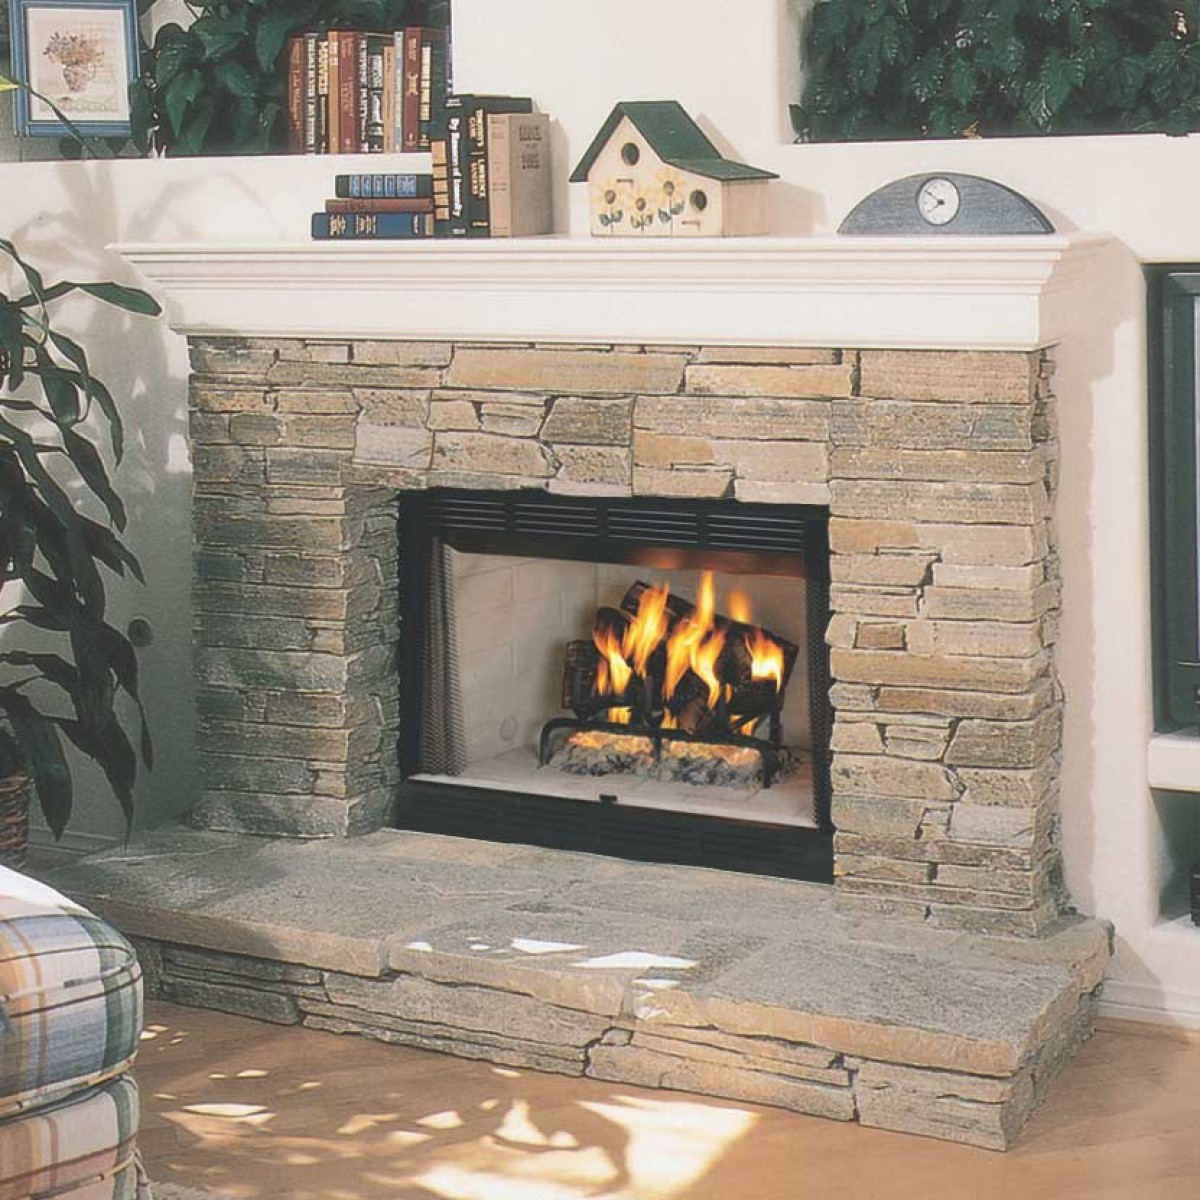 Ihp Superior Wrtwct2000 Wood Burning Fireplace